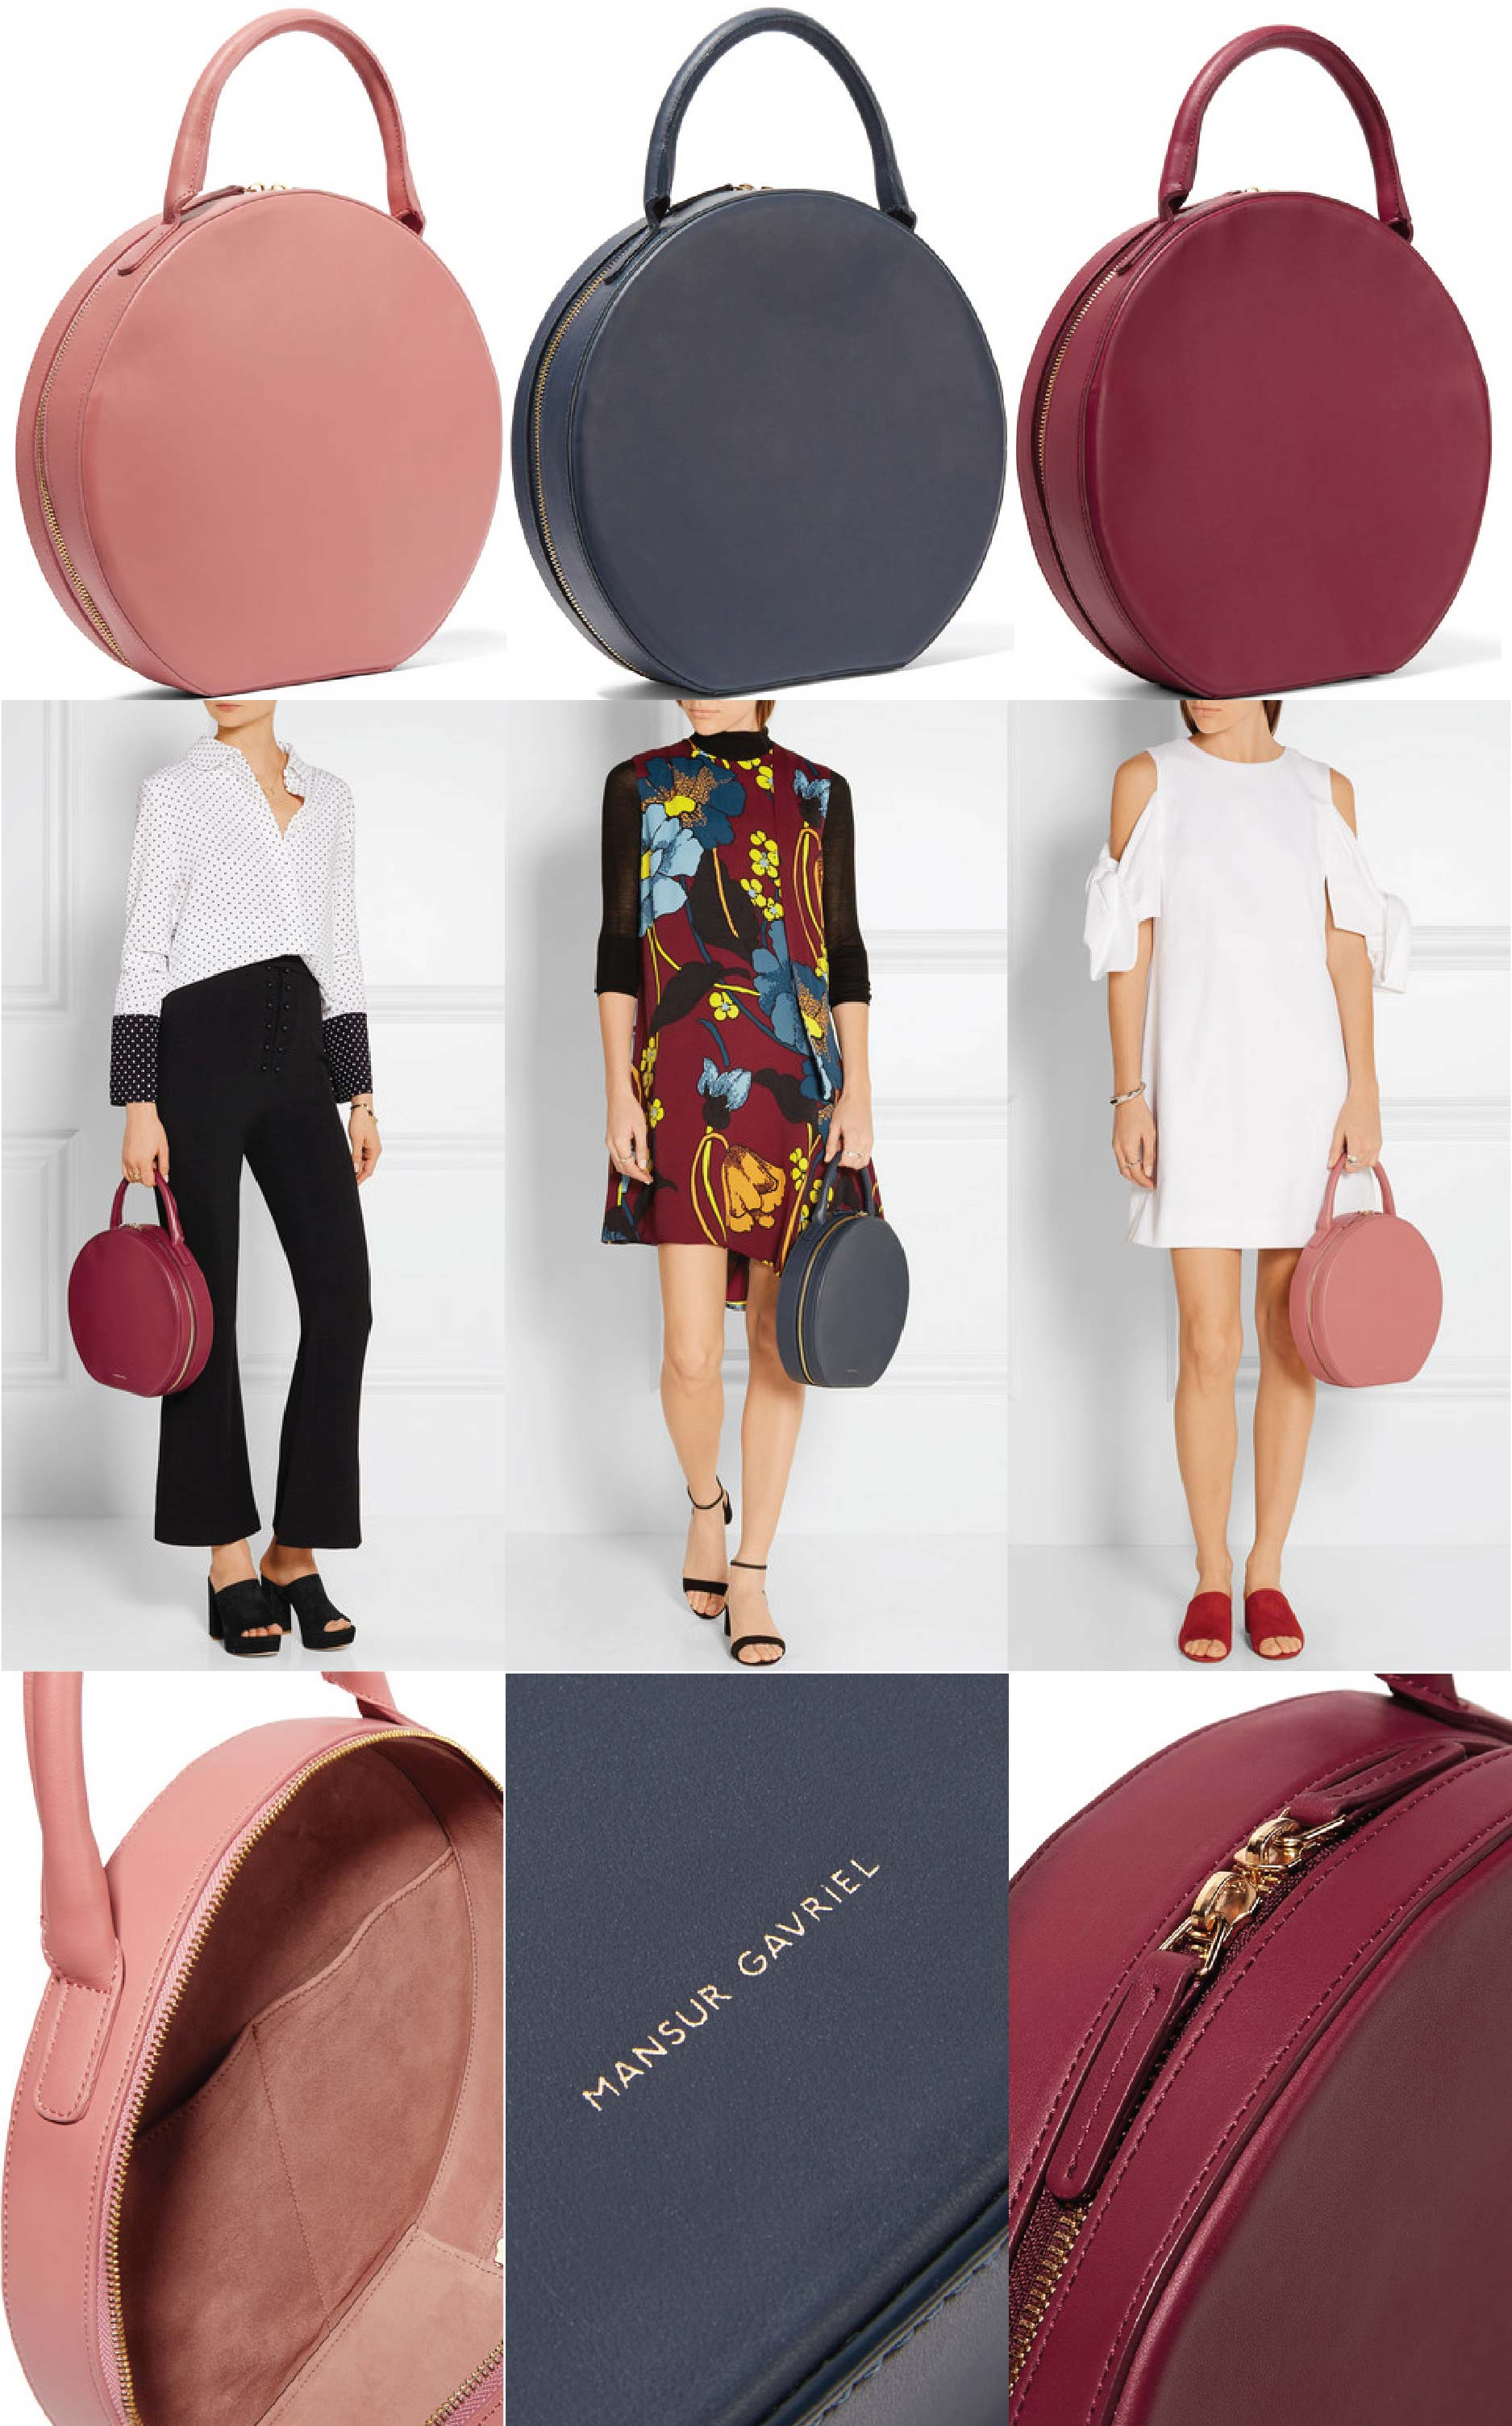 Mansur Gavriel Handbags, Circle Leather Tote Bag